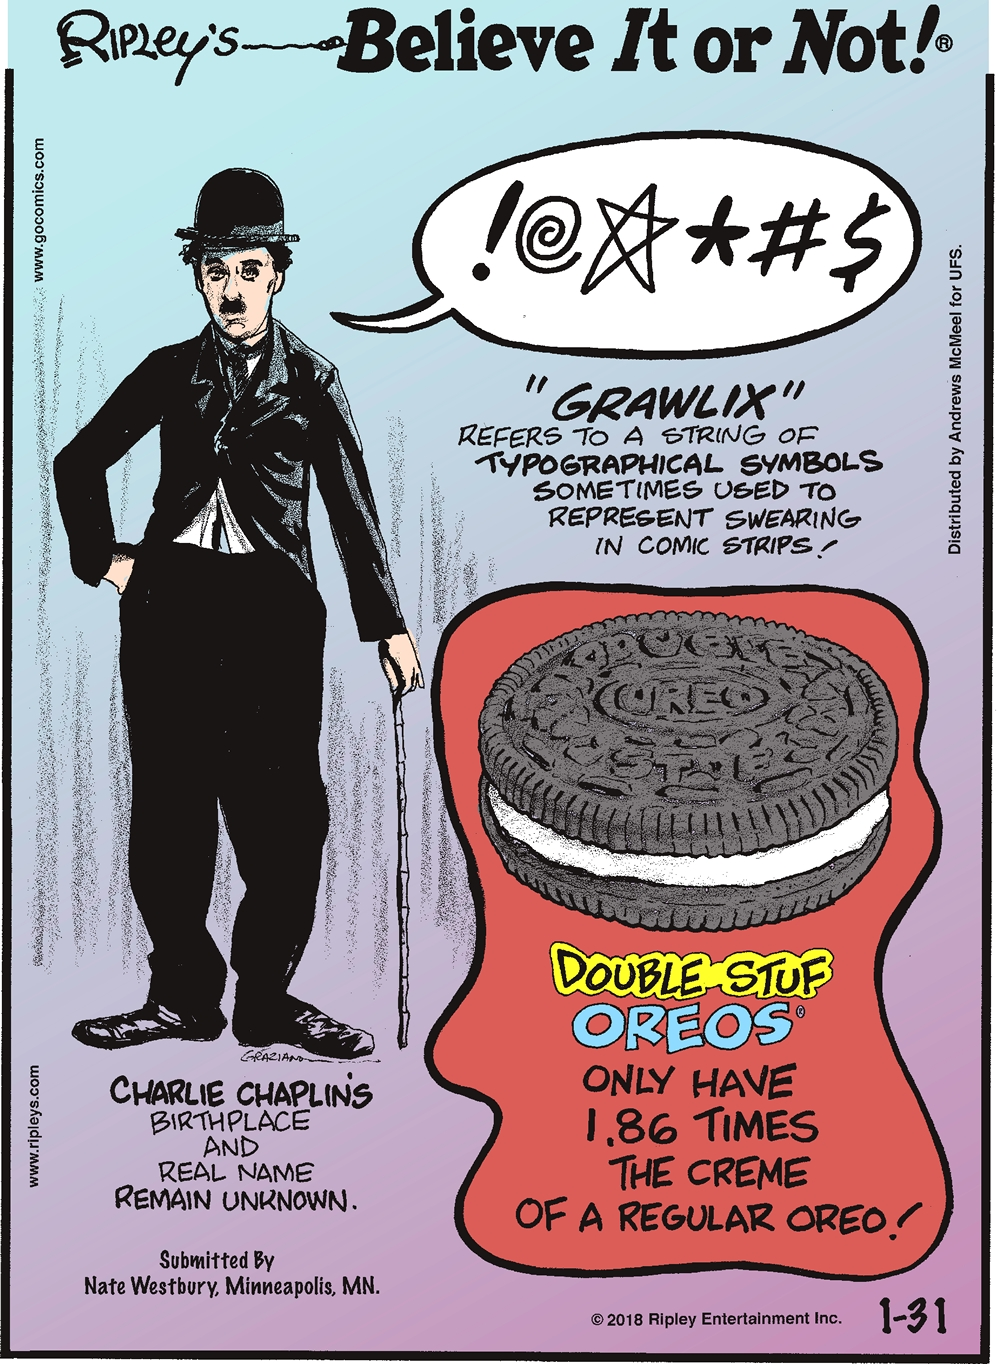 """Grawlix"" refers to a string of typographical symbols sometimes used to represent swearing in comic strips!-------------------- Charlie Chaplin's birthplace and real name remain unknown. Submitted by Nate Westbury, Minneapolis, MN.-------------------- Double Stuf Oreos only have 1.86 times the creme of a regular Oreo!"